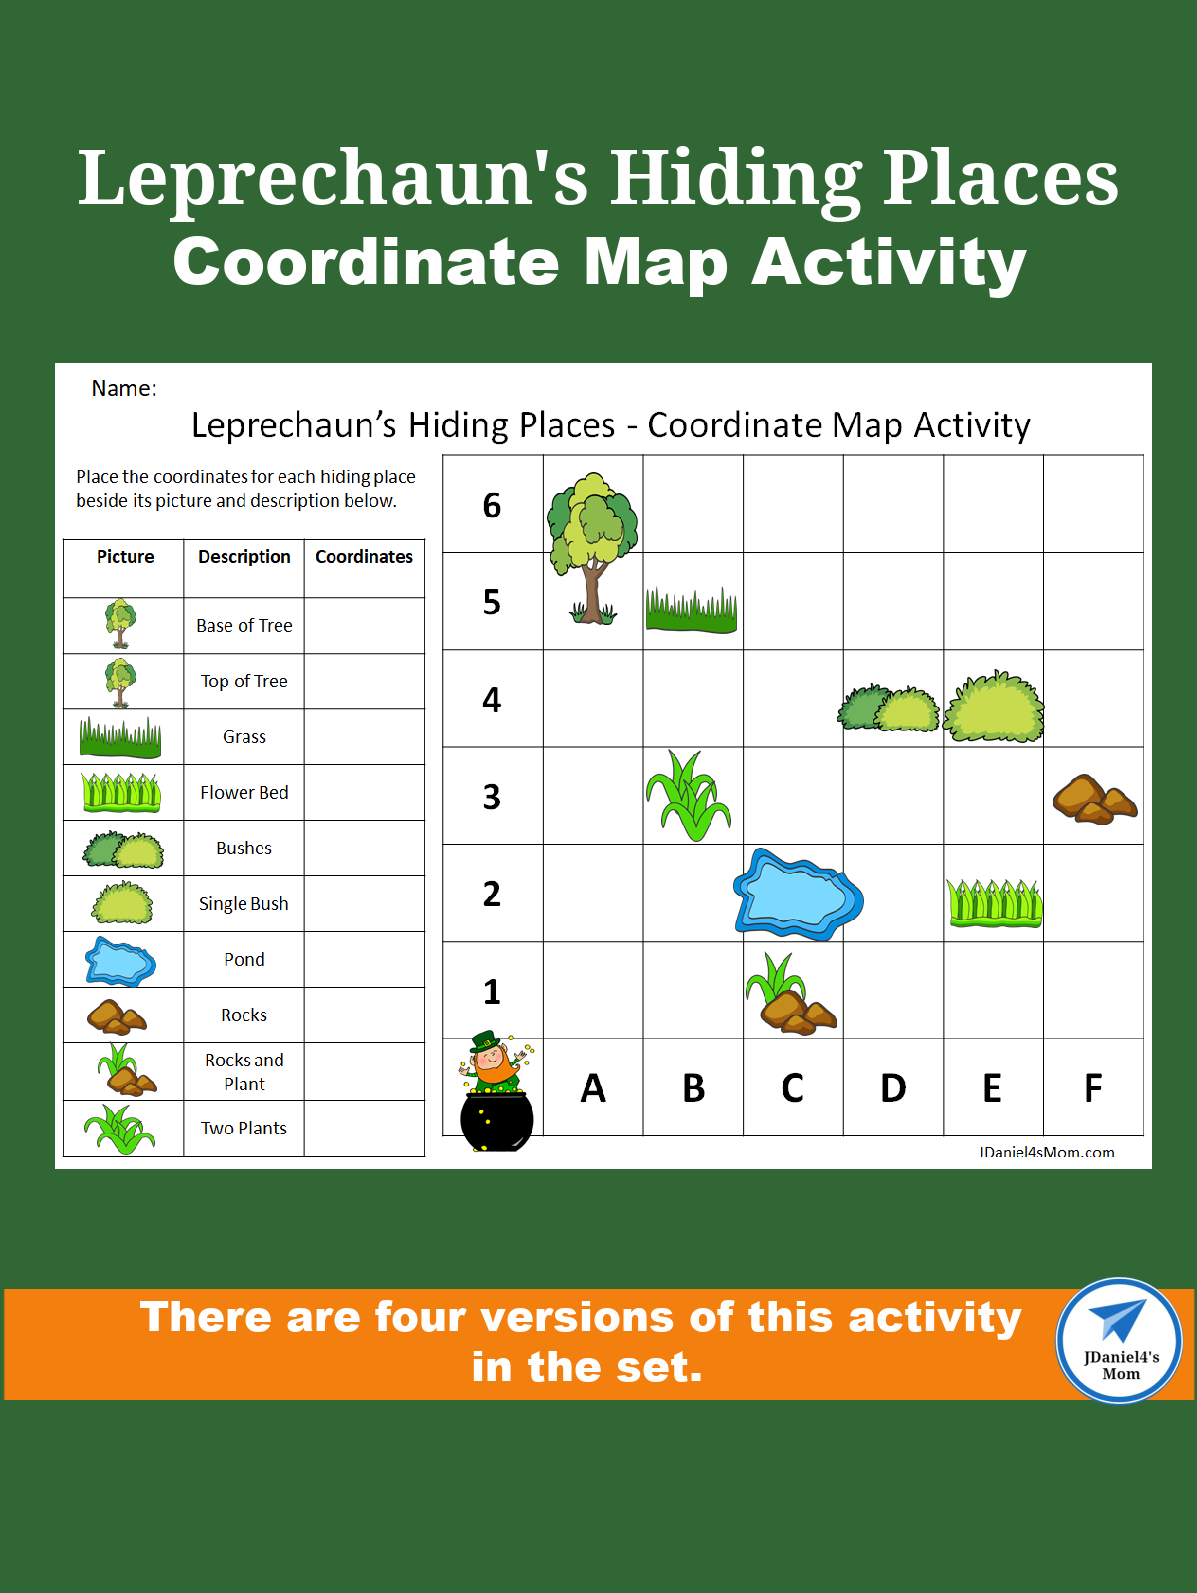 Coordinate Map Activity Leprechaun S Hiding Places Jdaniel4s Mom In 2021 Map Activities Geography For Kids Early Learning Math [ 1593 x 1197 Pixel ]